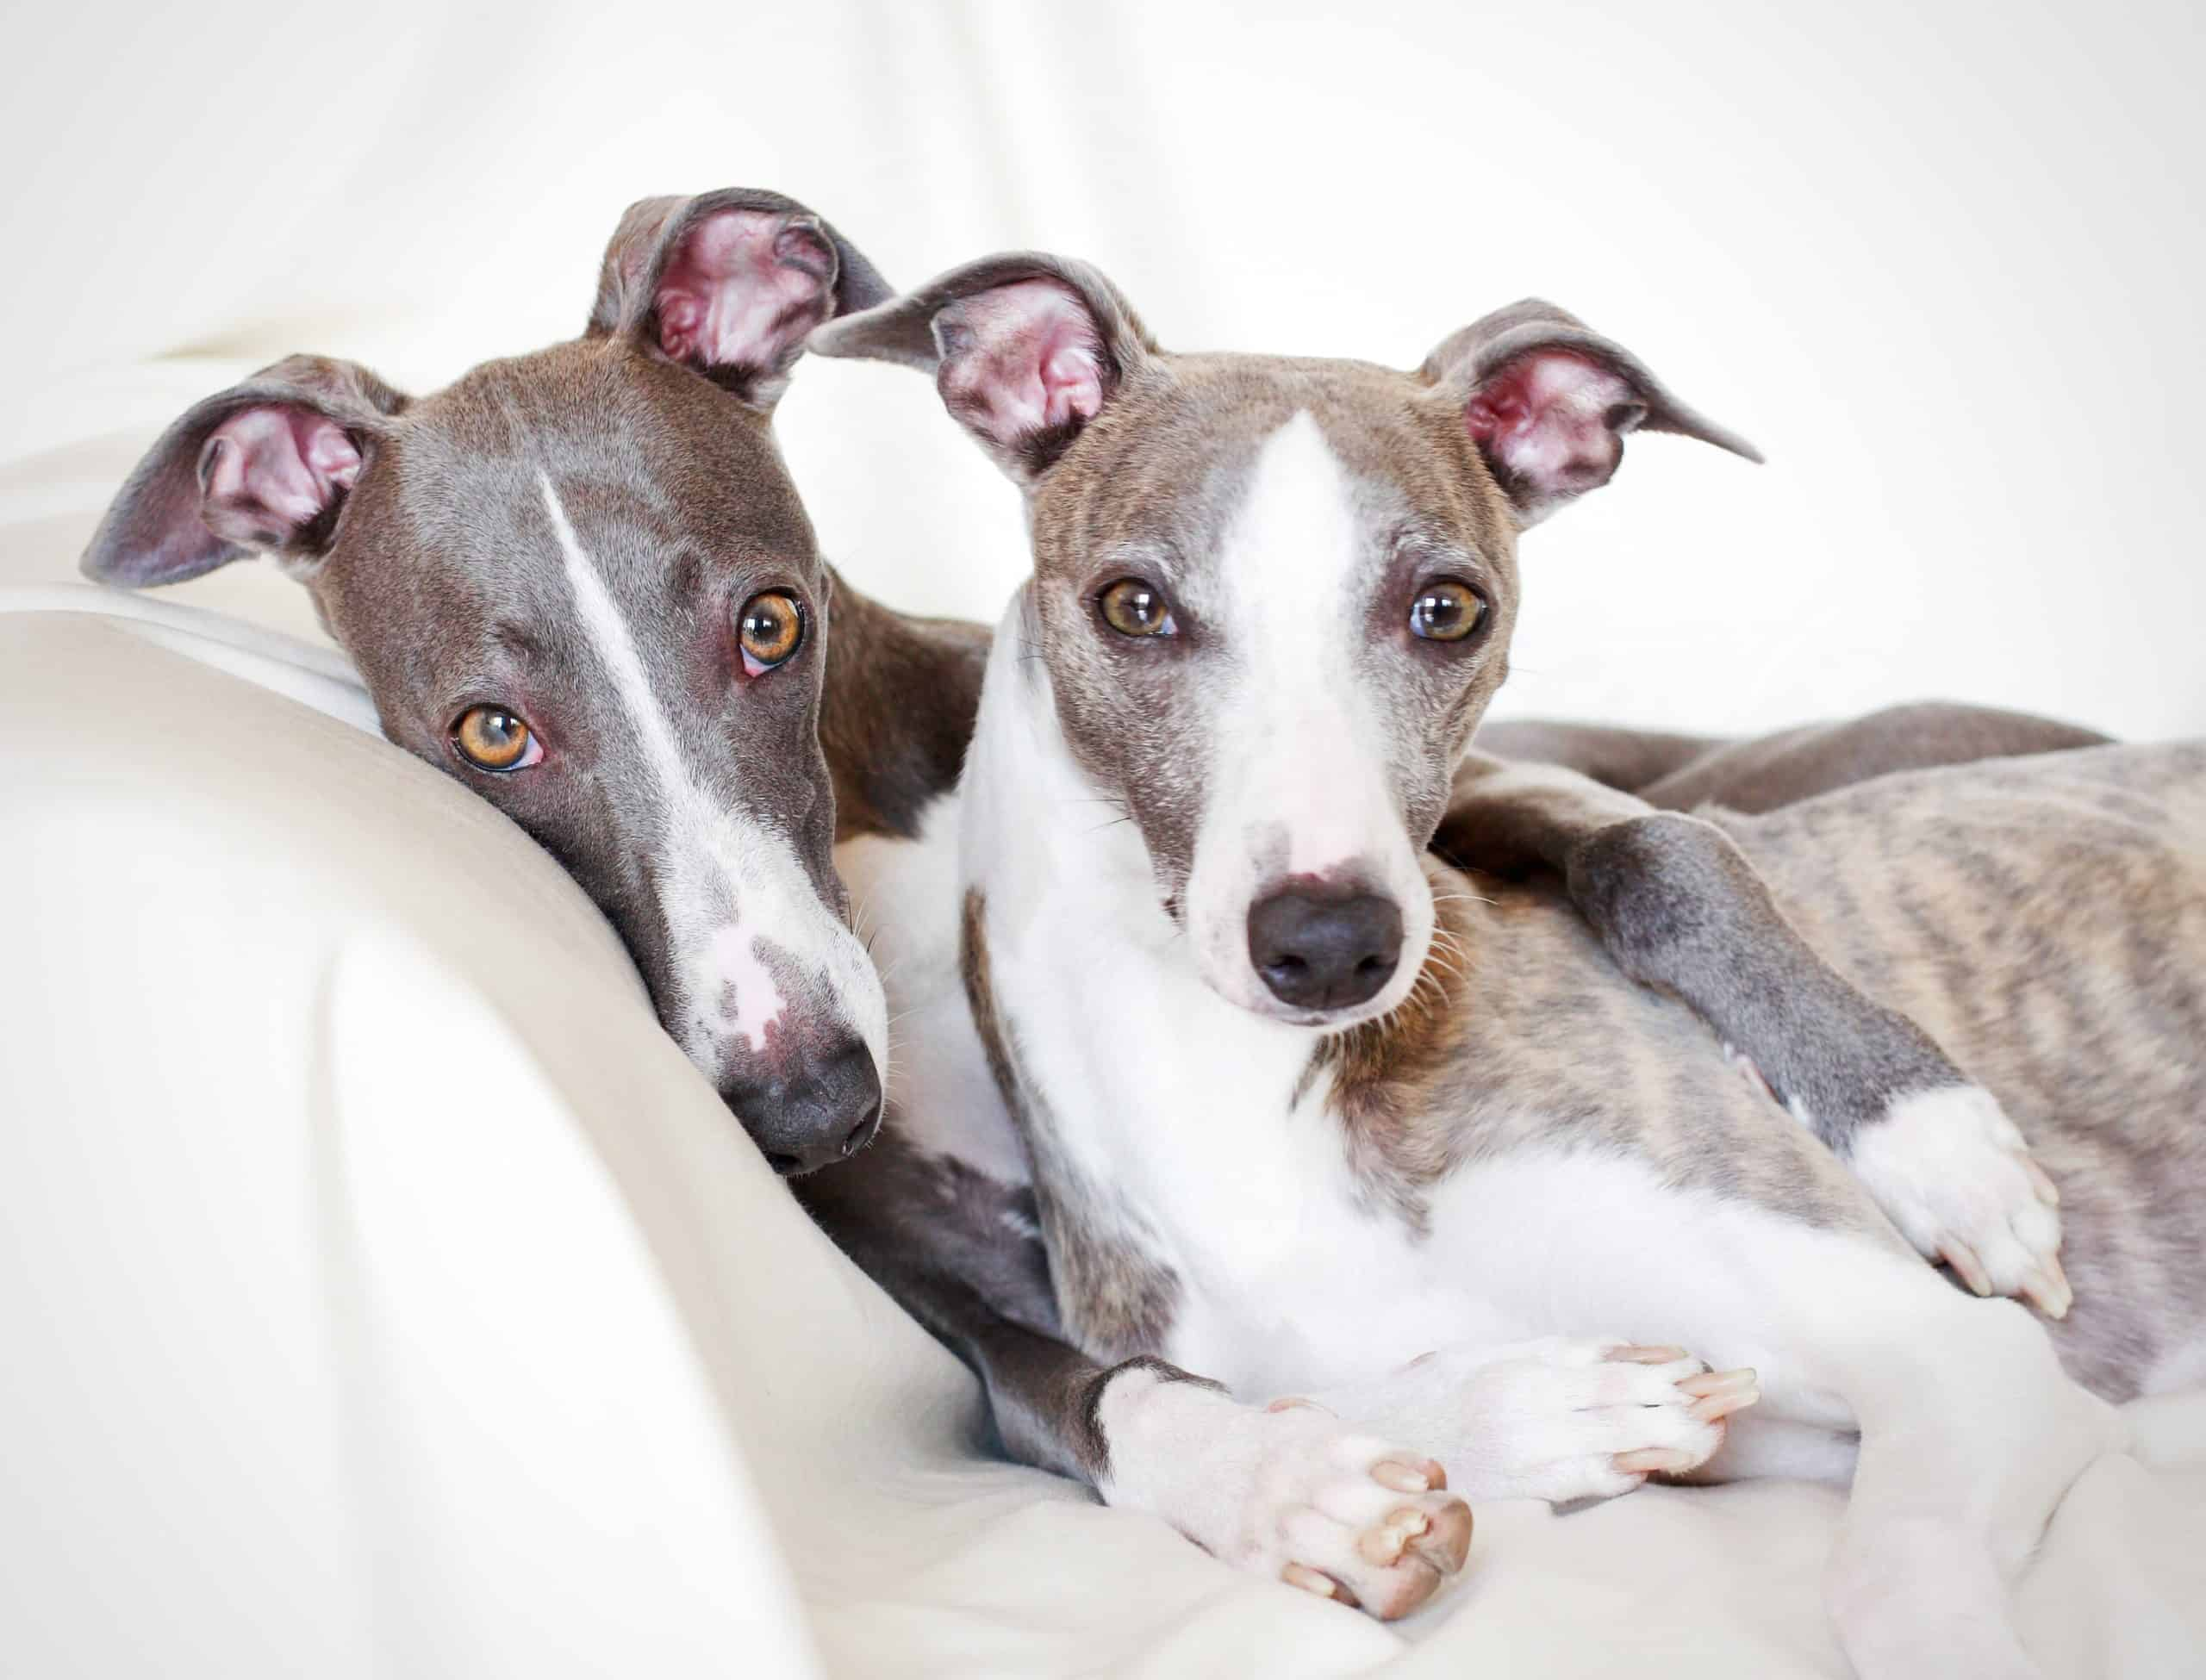 Pair of whippets snuggles together. The whippet resembles a small greyhound. The dogs are affectionate, intelligent, sweet-natured, and loyal.